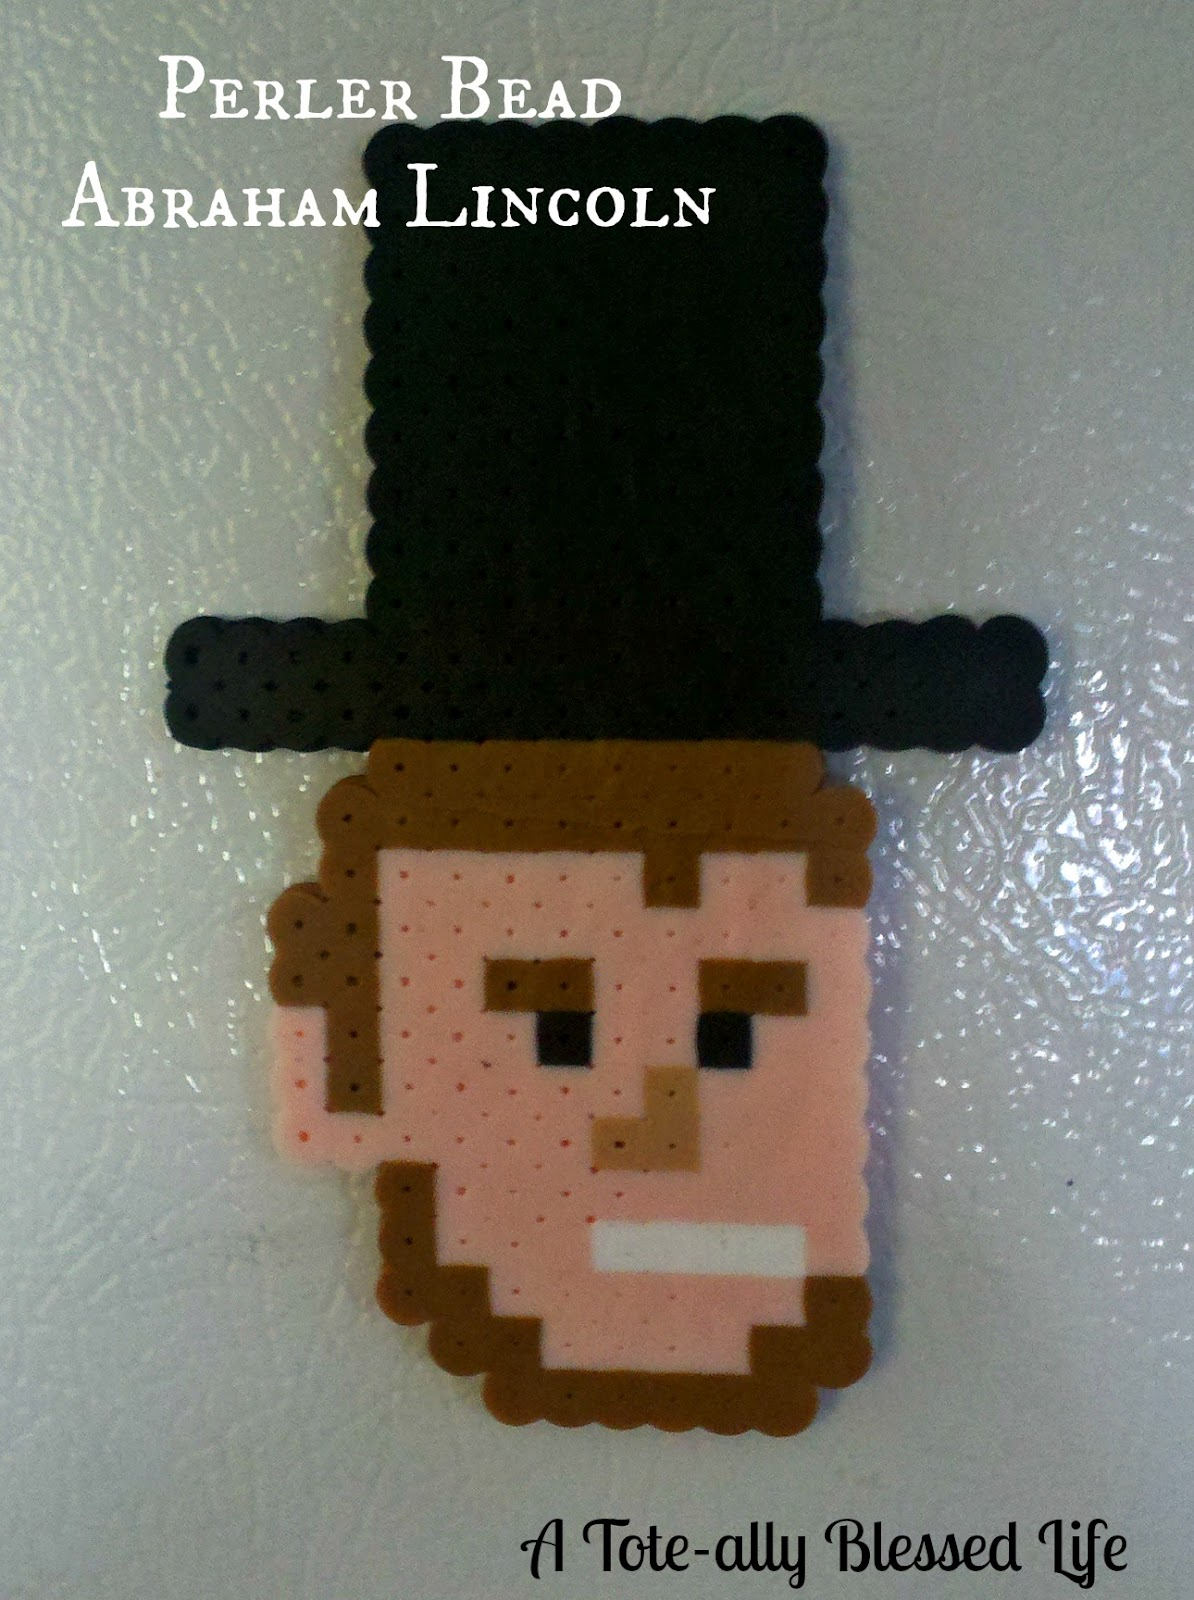 a study of the life of abraham lincoln Life of abraham lincoln has 11 ratings and 1 review wendall paul said: this is one of those books that give testament to the truth just because a book i.